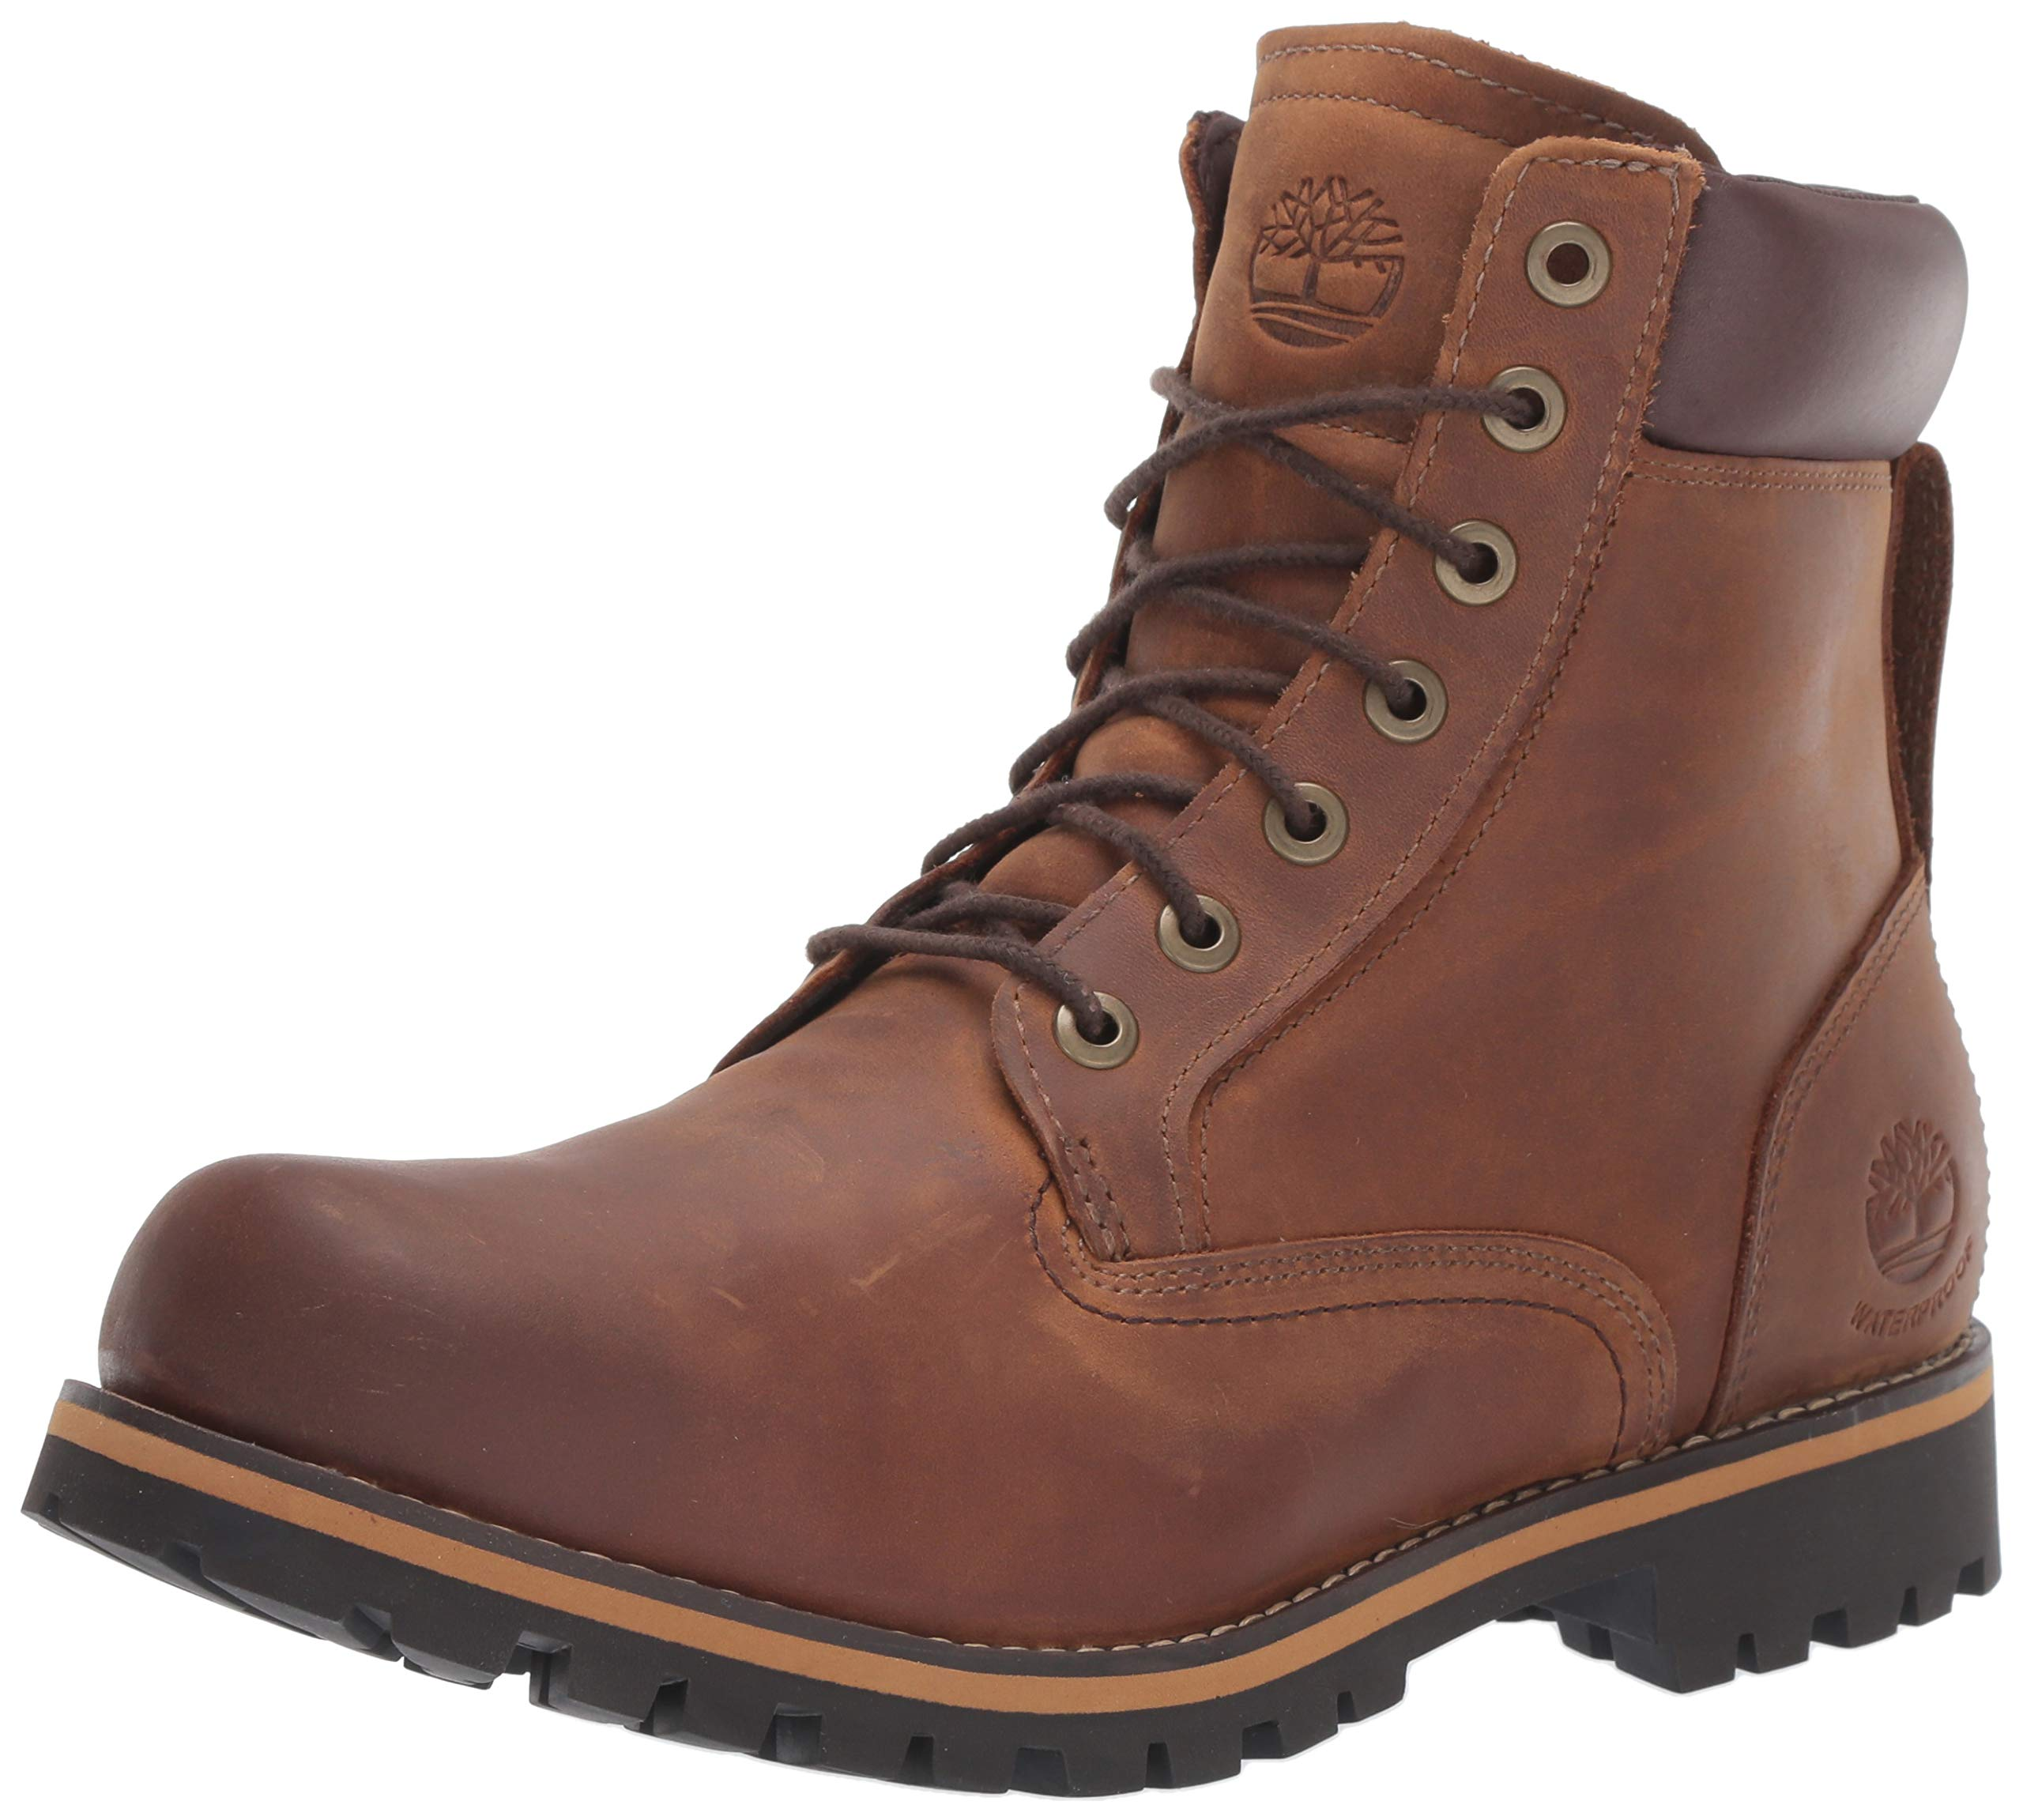 Timberland Men's Earthkeepers Rugged Boot, Medium brown full grain, 7.5 W US